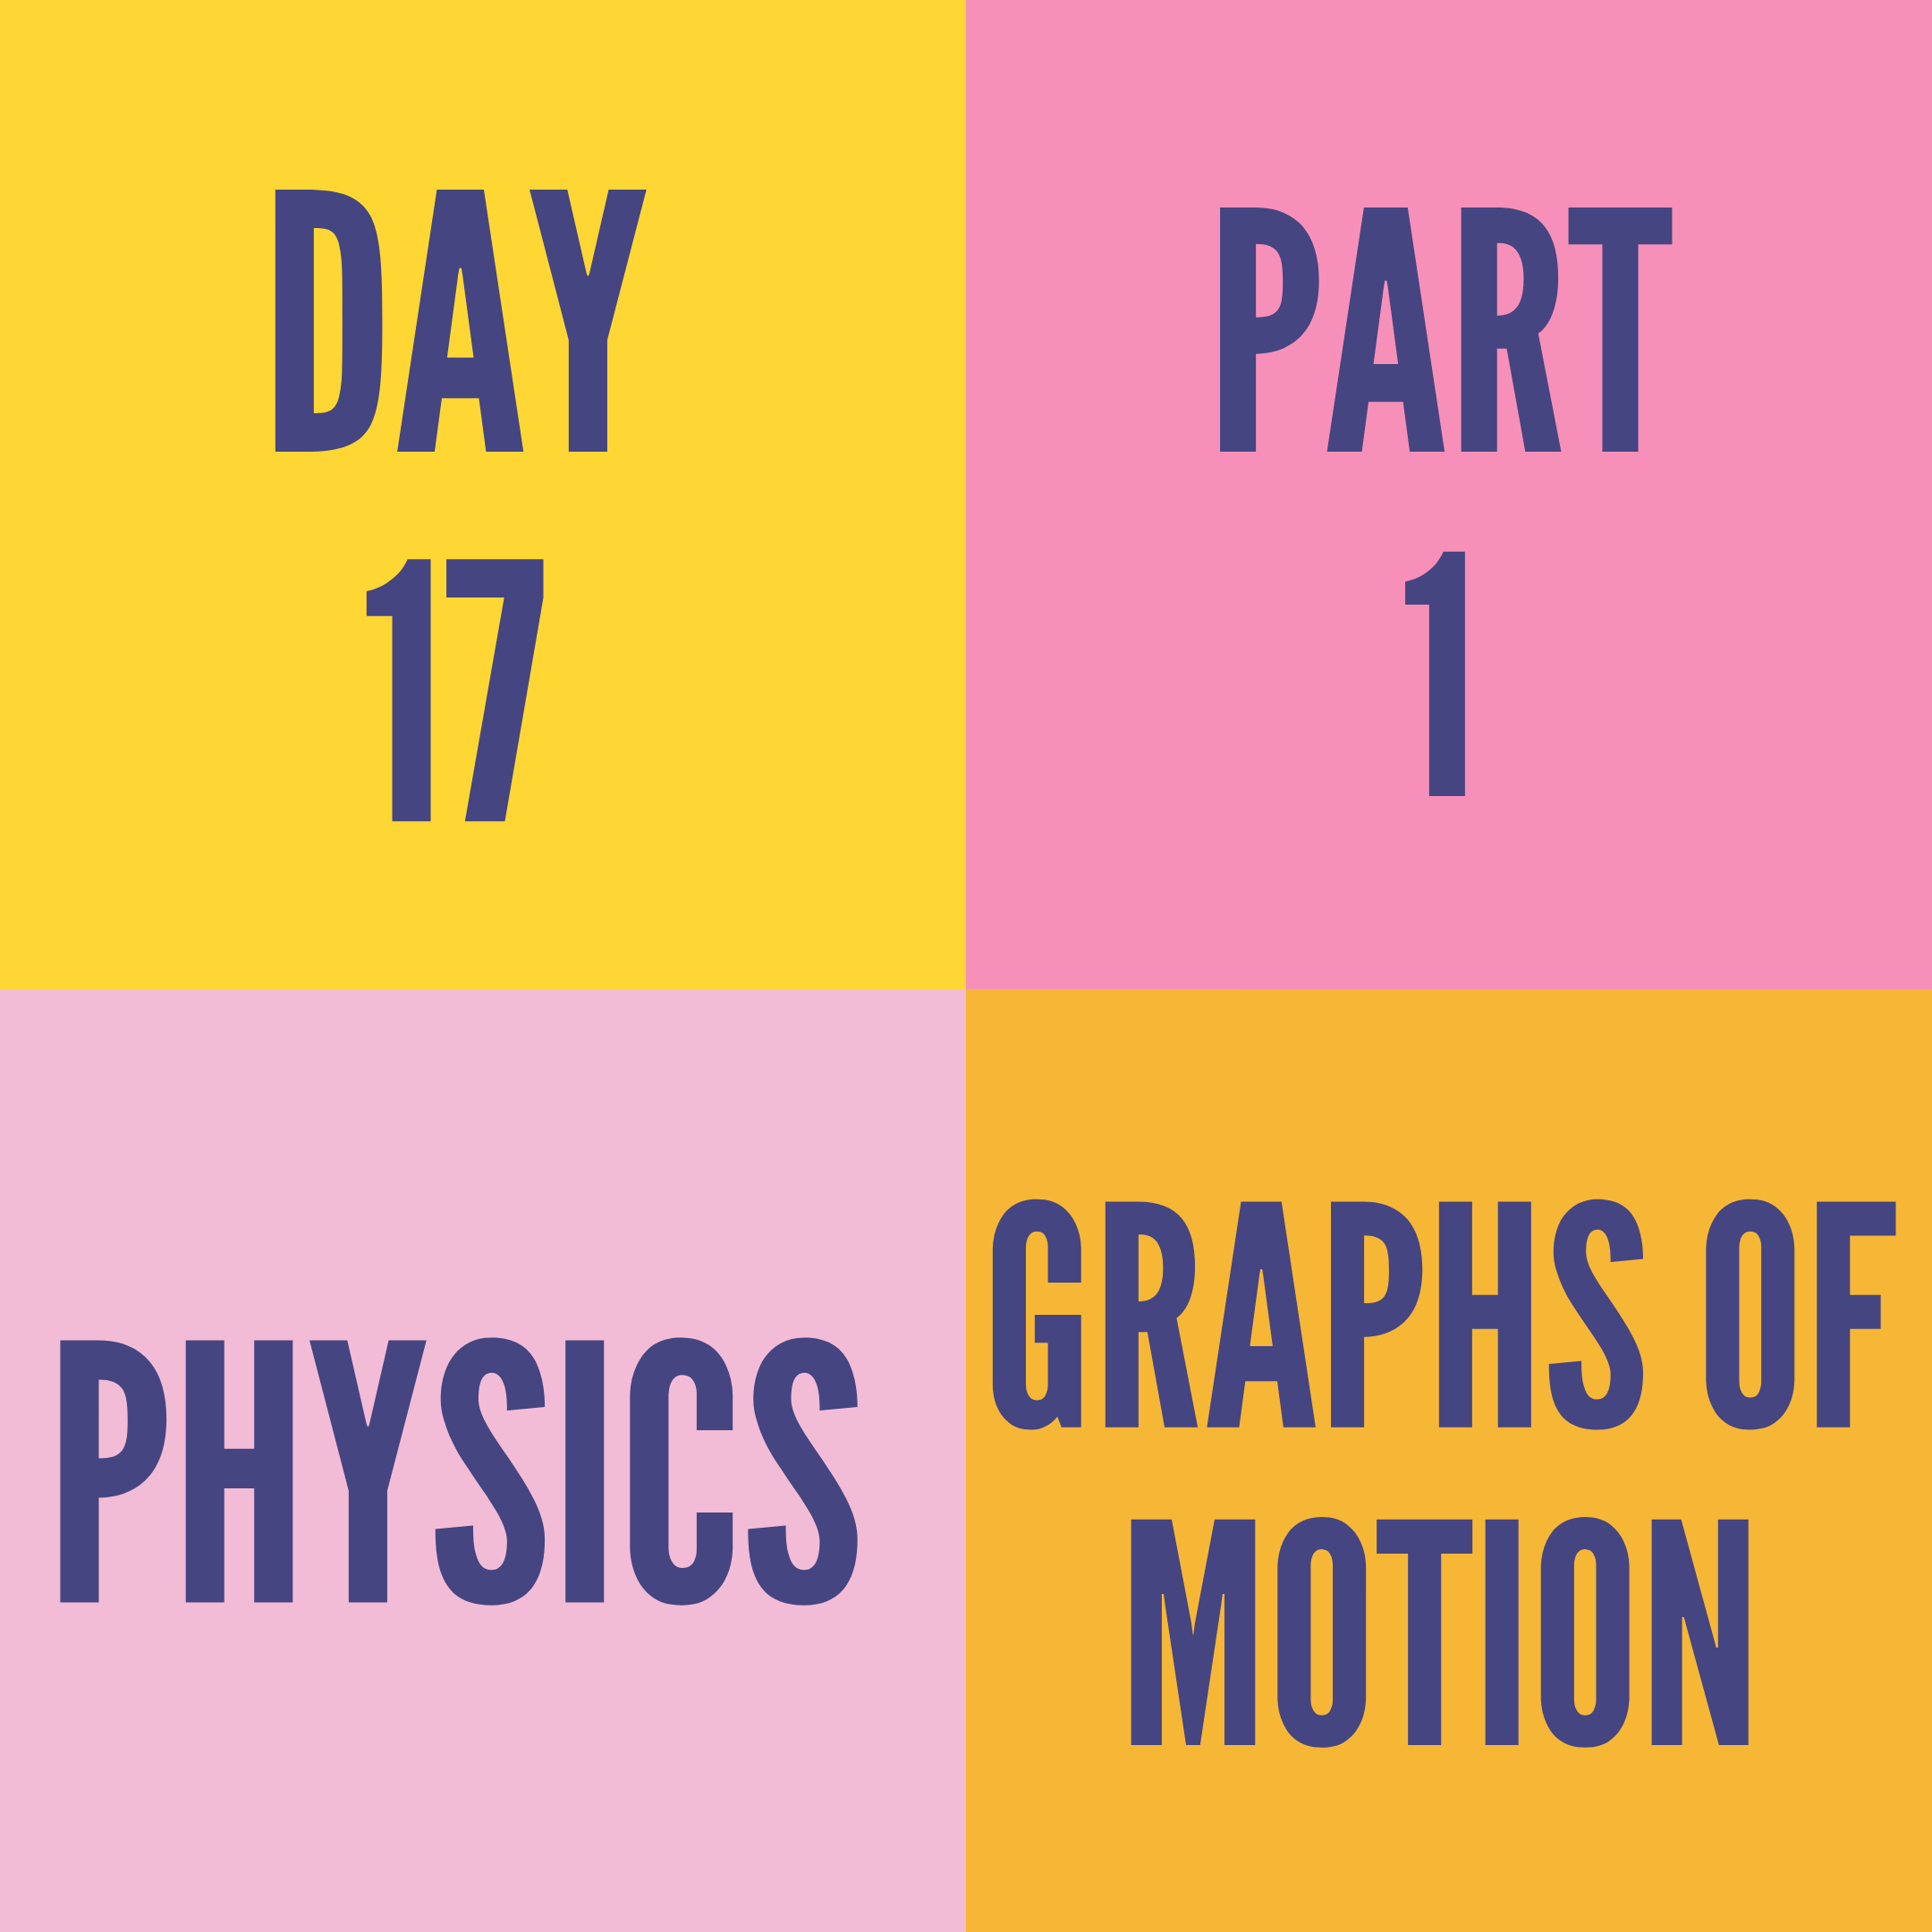 DAY-17 PART-1 GRAPHS OF MOTION